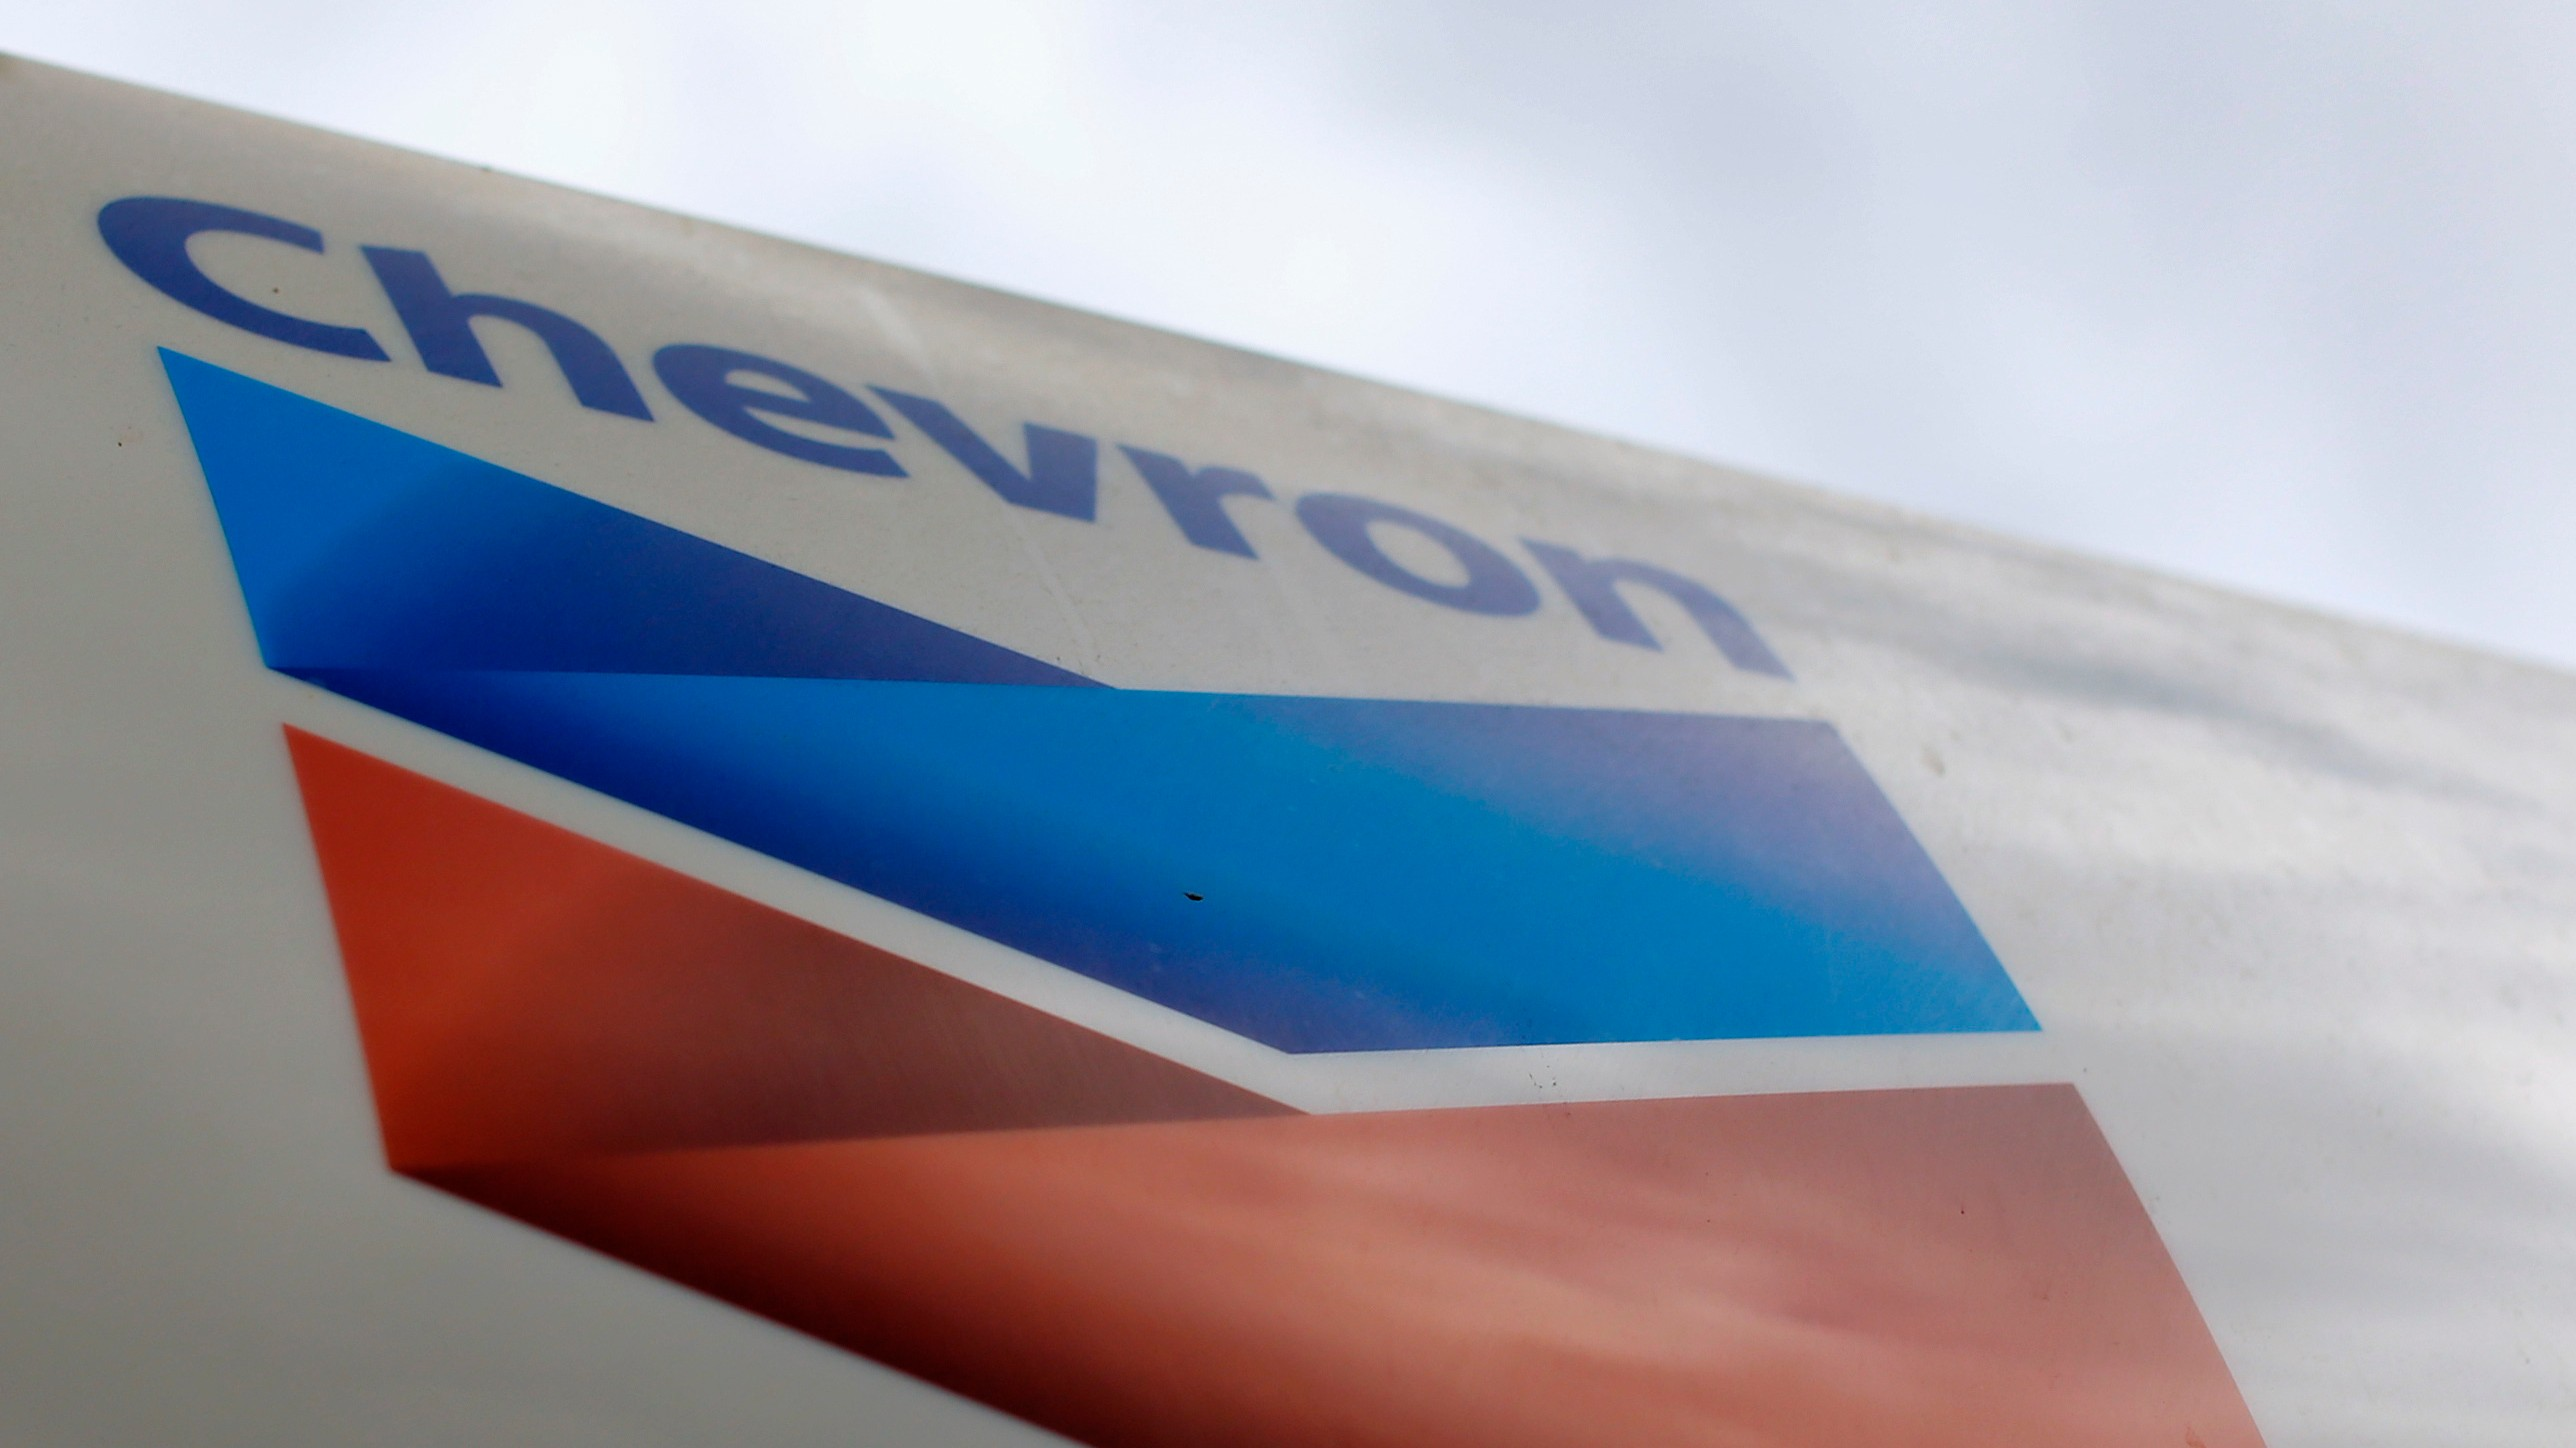 Chevron Puts On Ice Its Plans to Drill in the Canadian Arctic